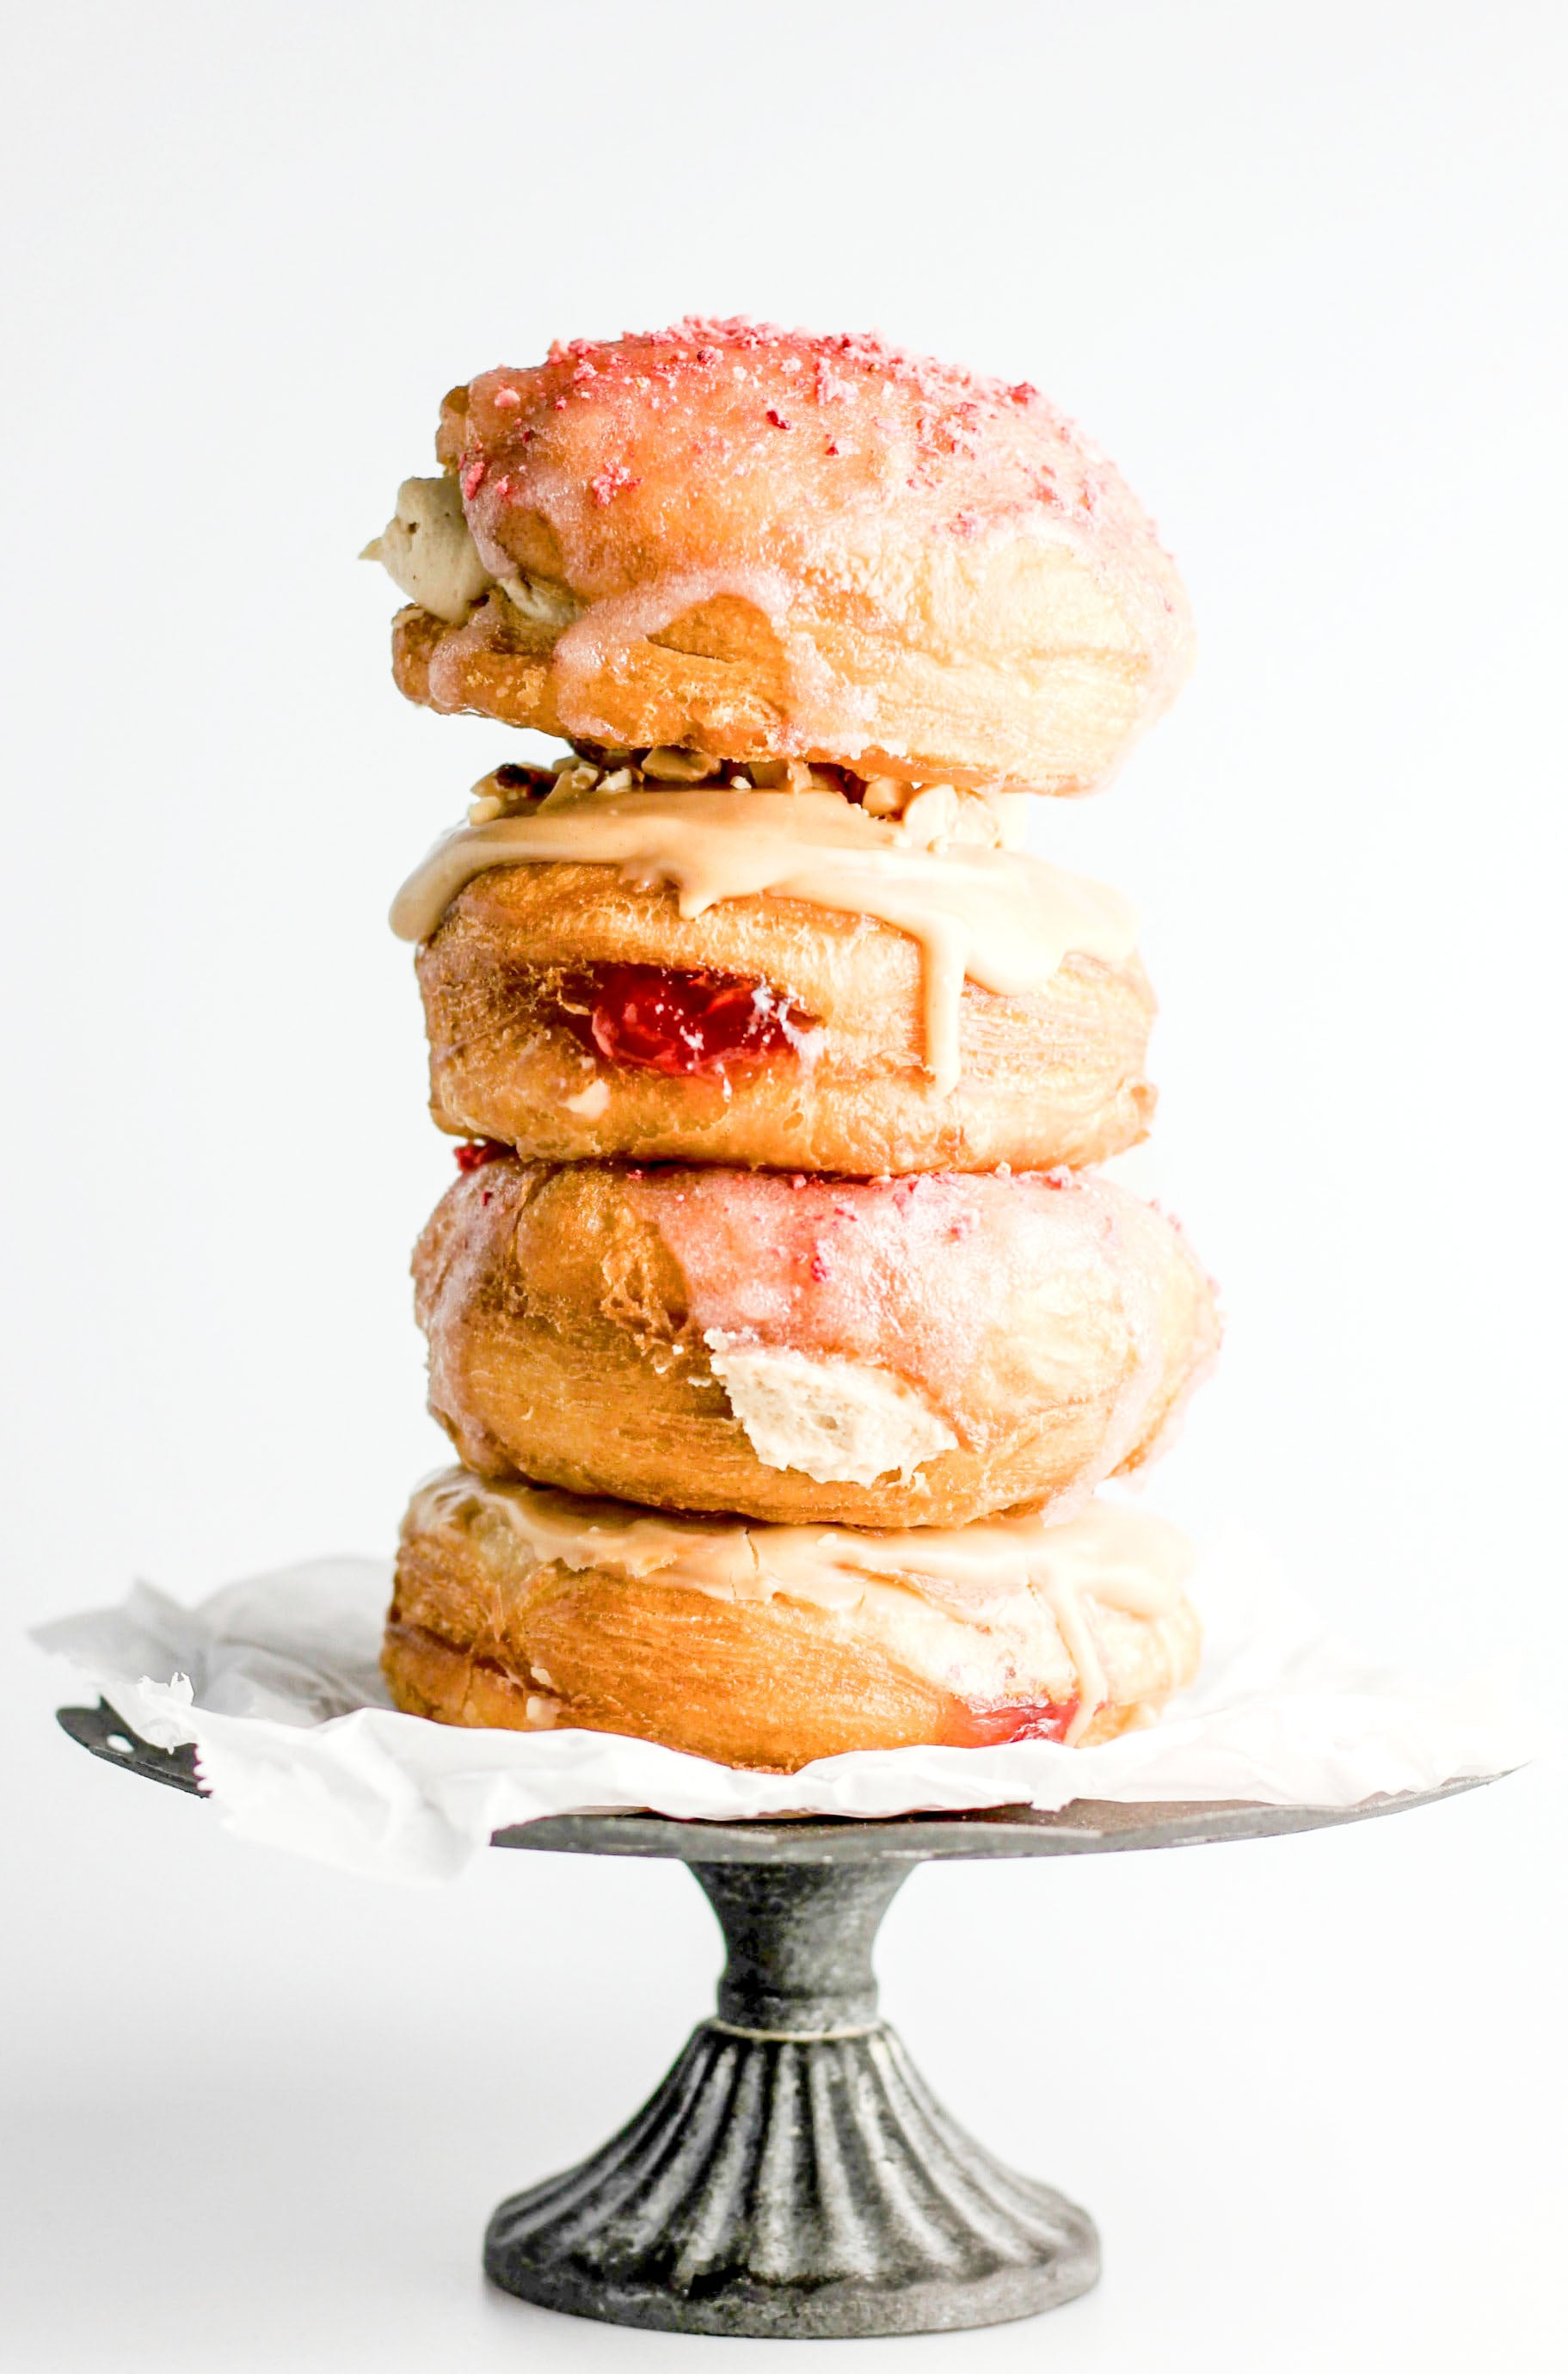 PB&Me + Jelly Stuffed Doughnuts